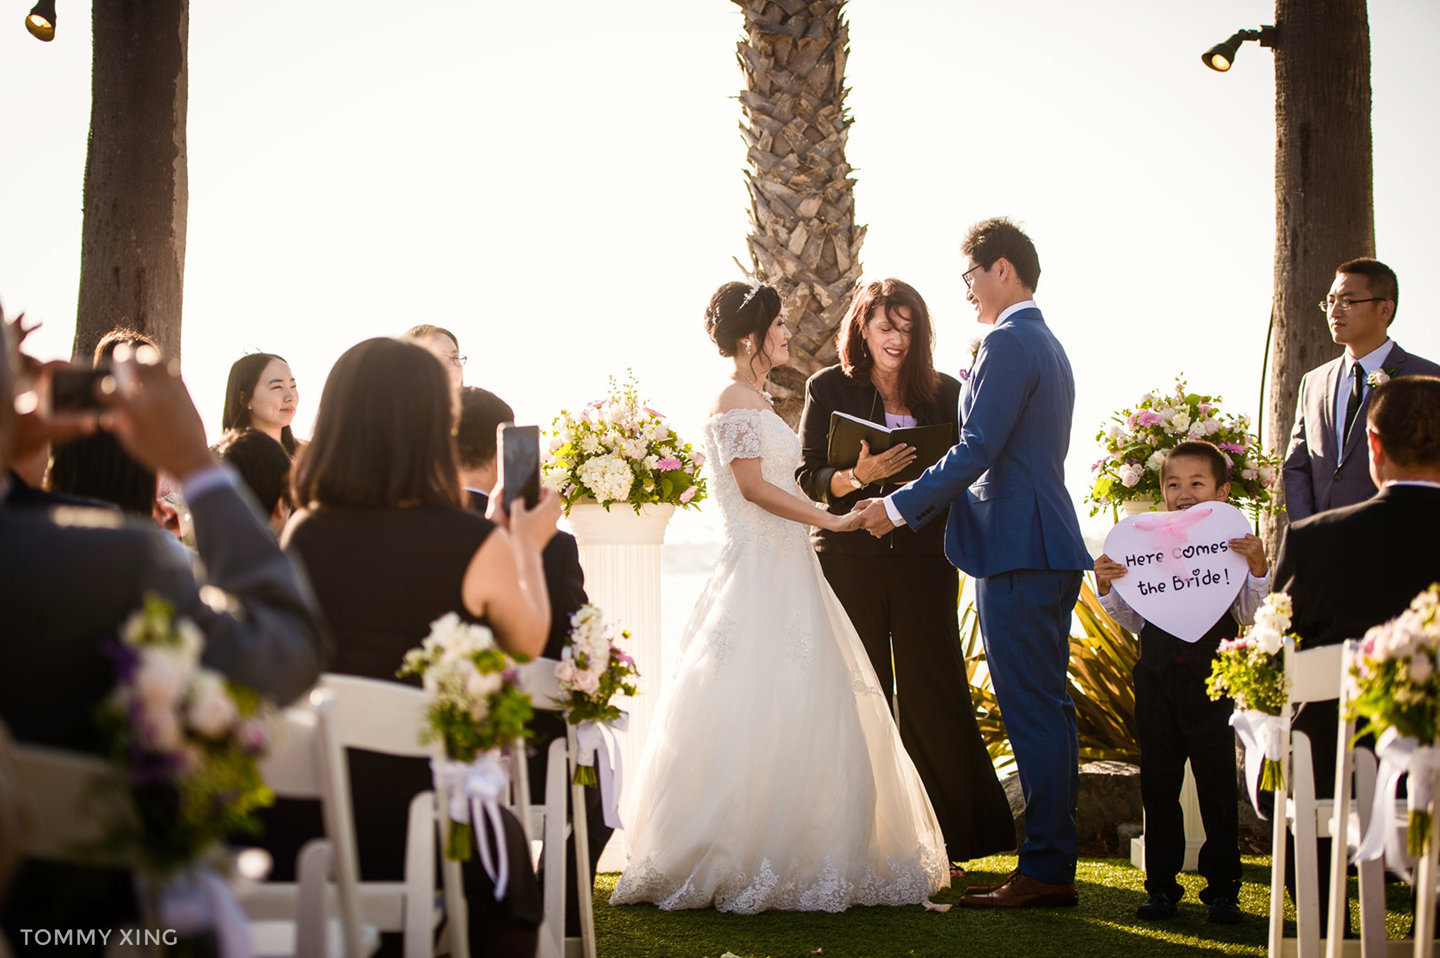 Paradise Point Resort Wedding Xiaolu & Bin San Diego 圣地亚哥婚礼摄影跟拍 Tommy Xing Photography 洛杉矶婚礼婚纱照摄影师 120.jpg